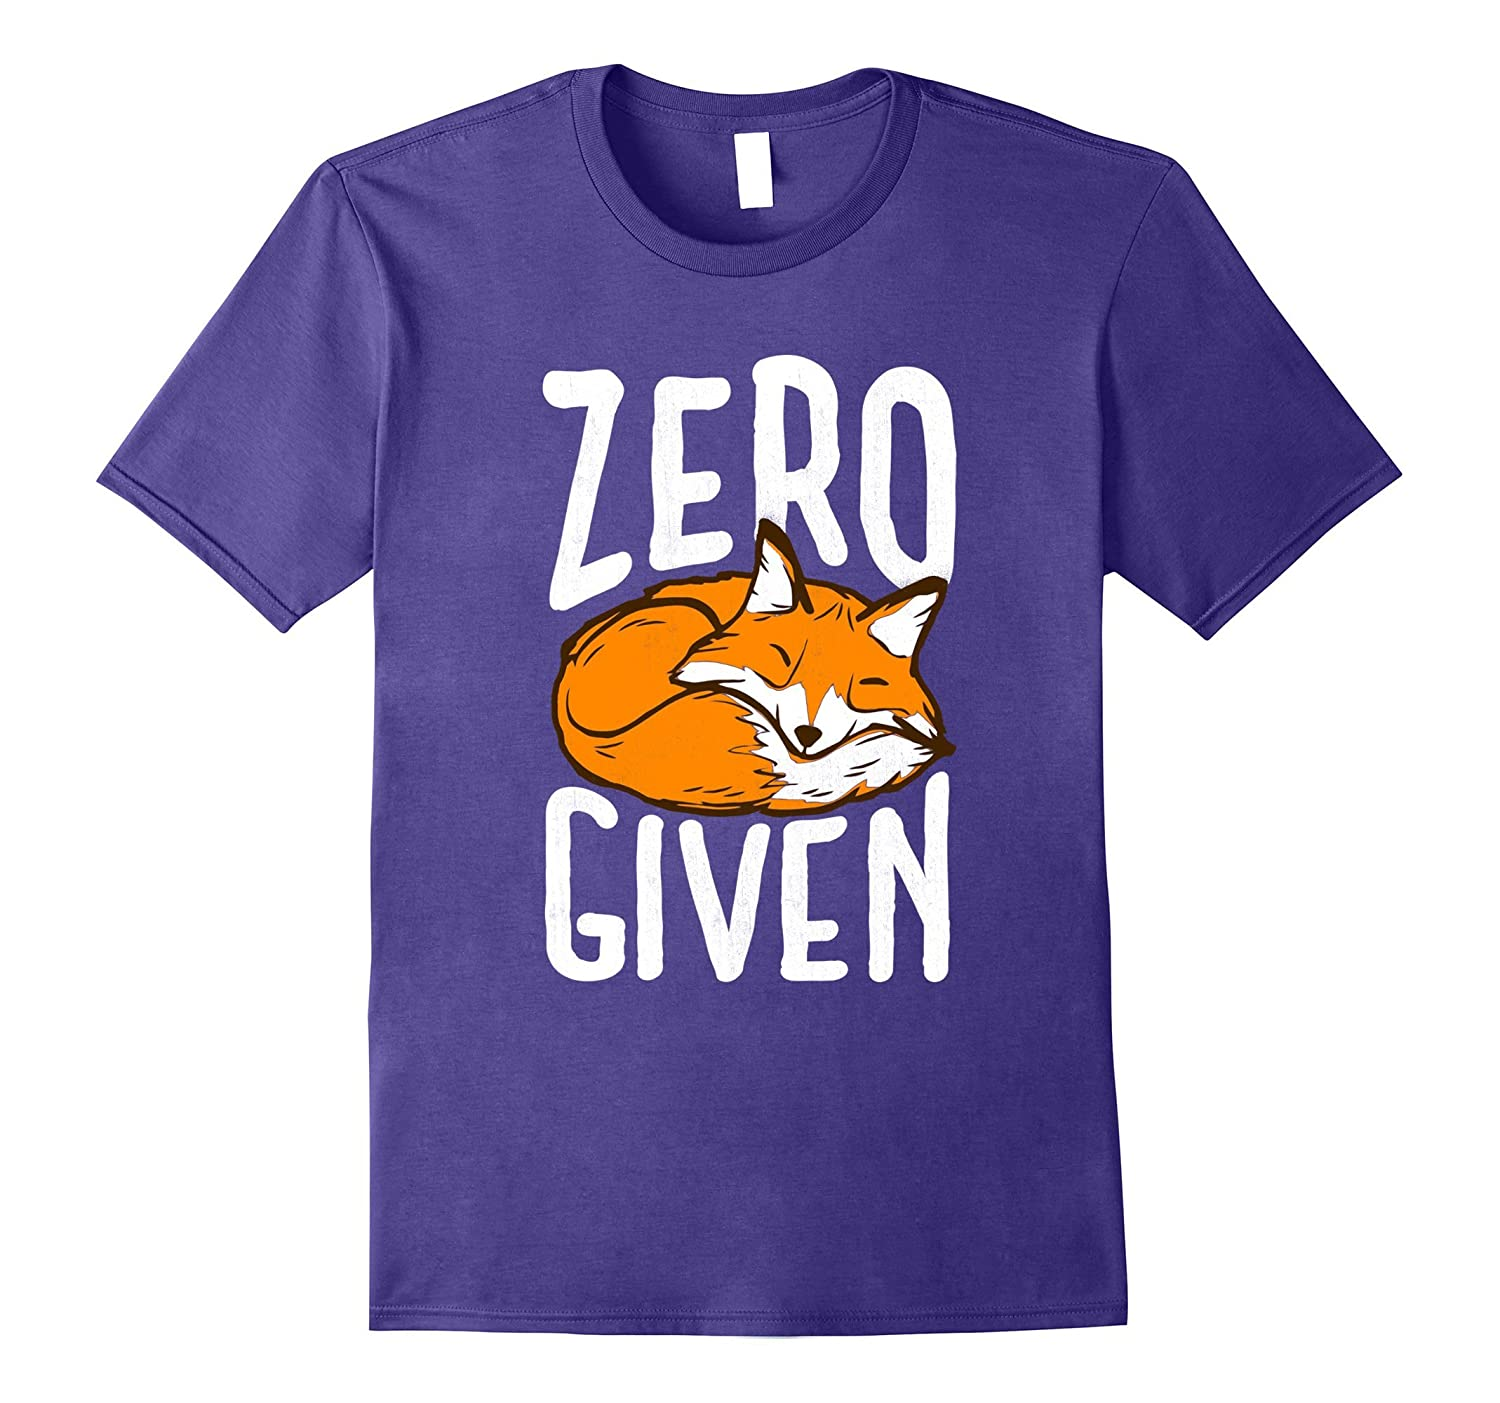 Zero Fox Given - Funny Pun Graphic Birthday Gift T-Shirt-Rose